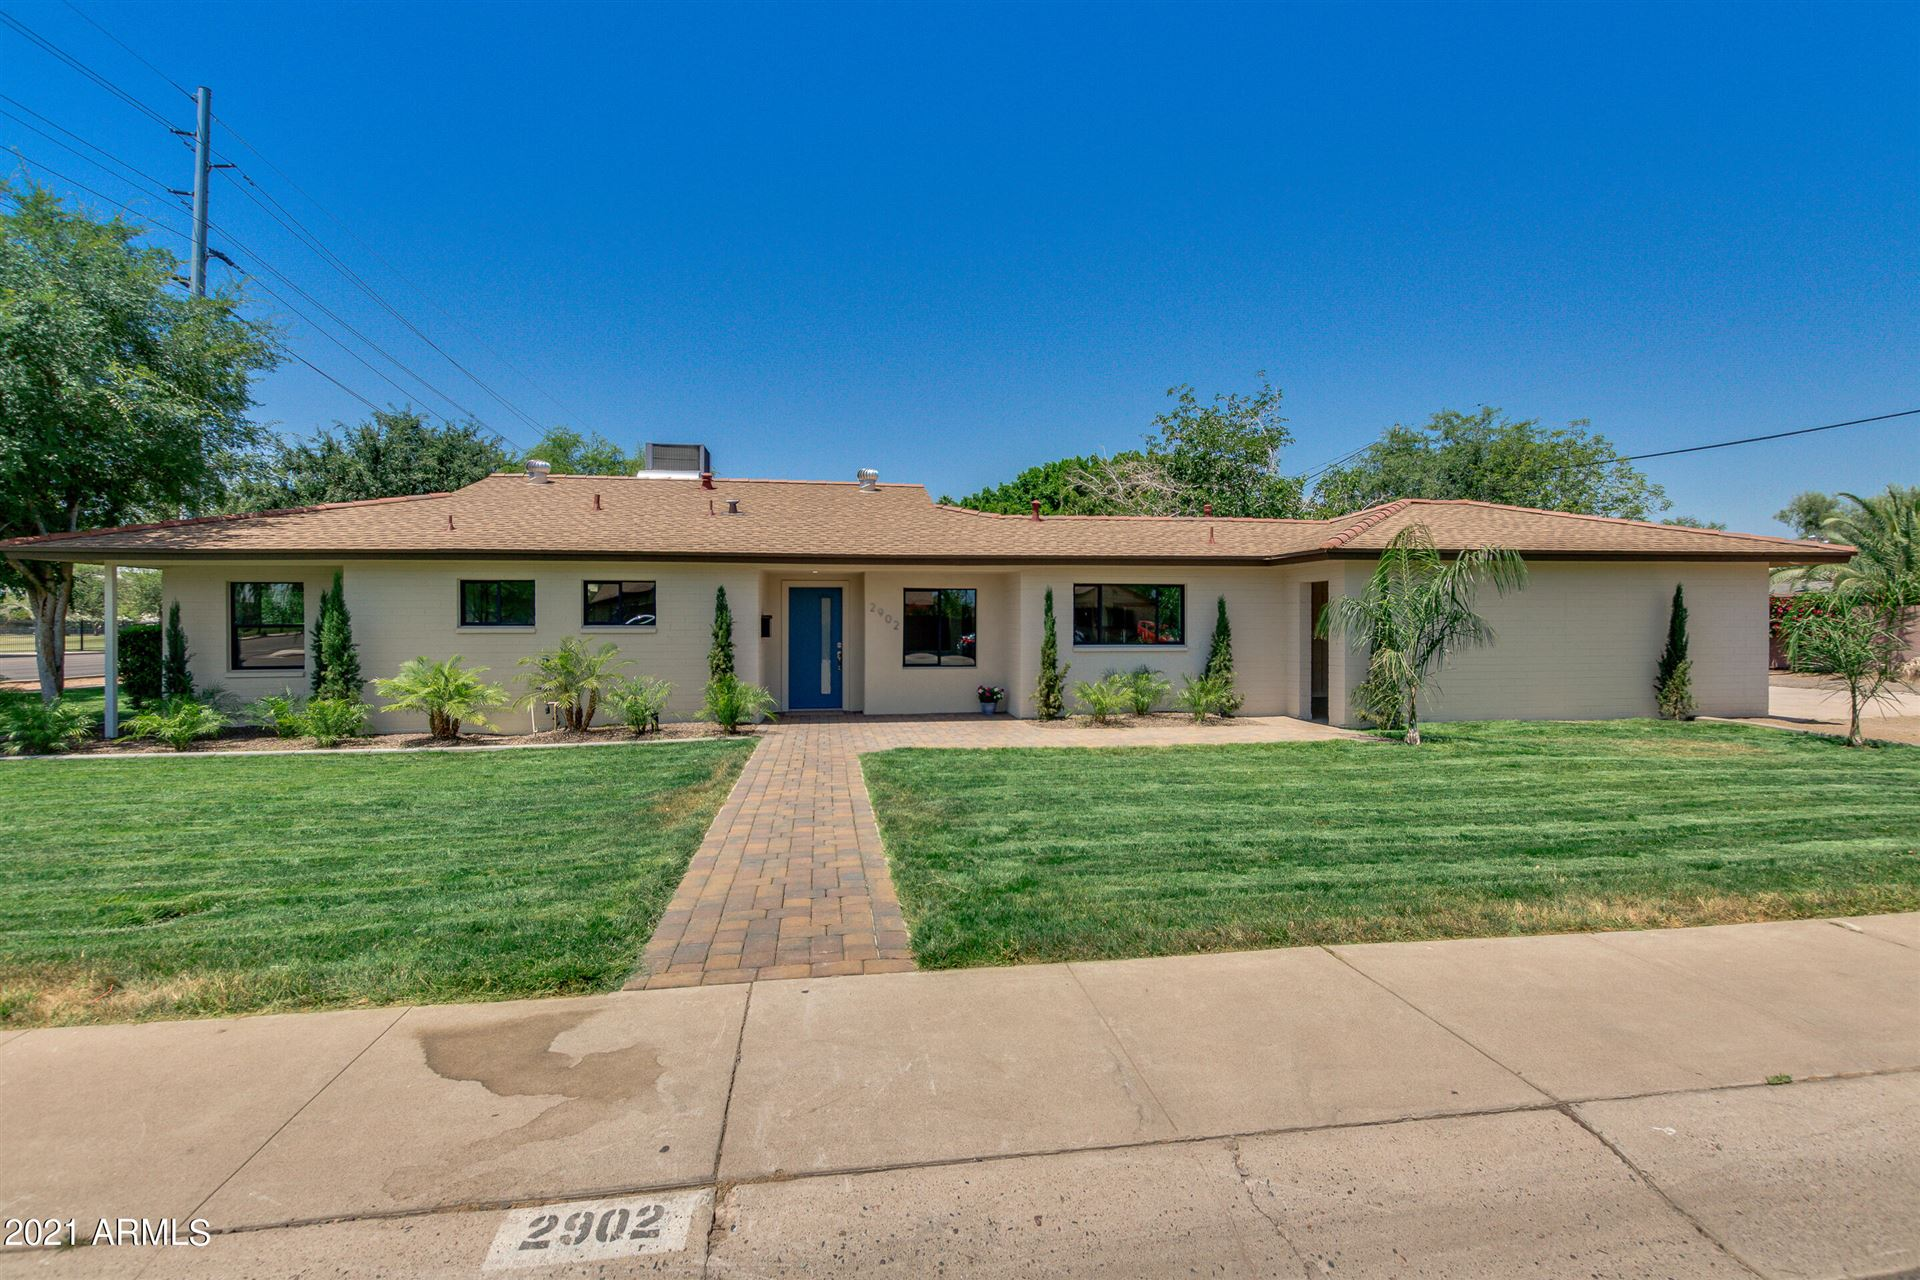 2902 N 18TH Avenue, Phoenix, AZ 85015 - MLS#: 6235626